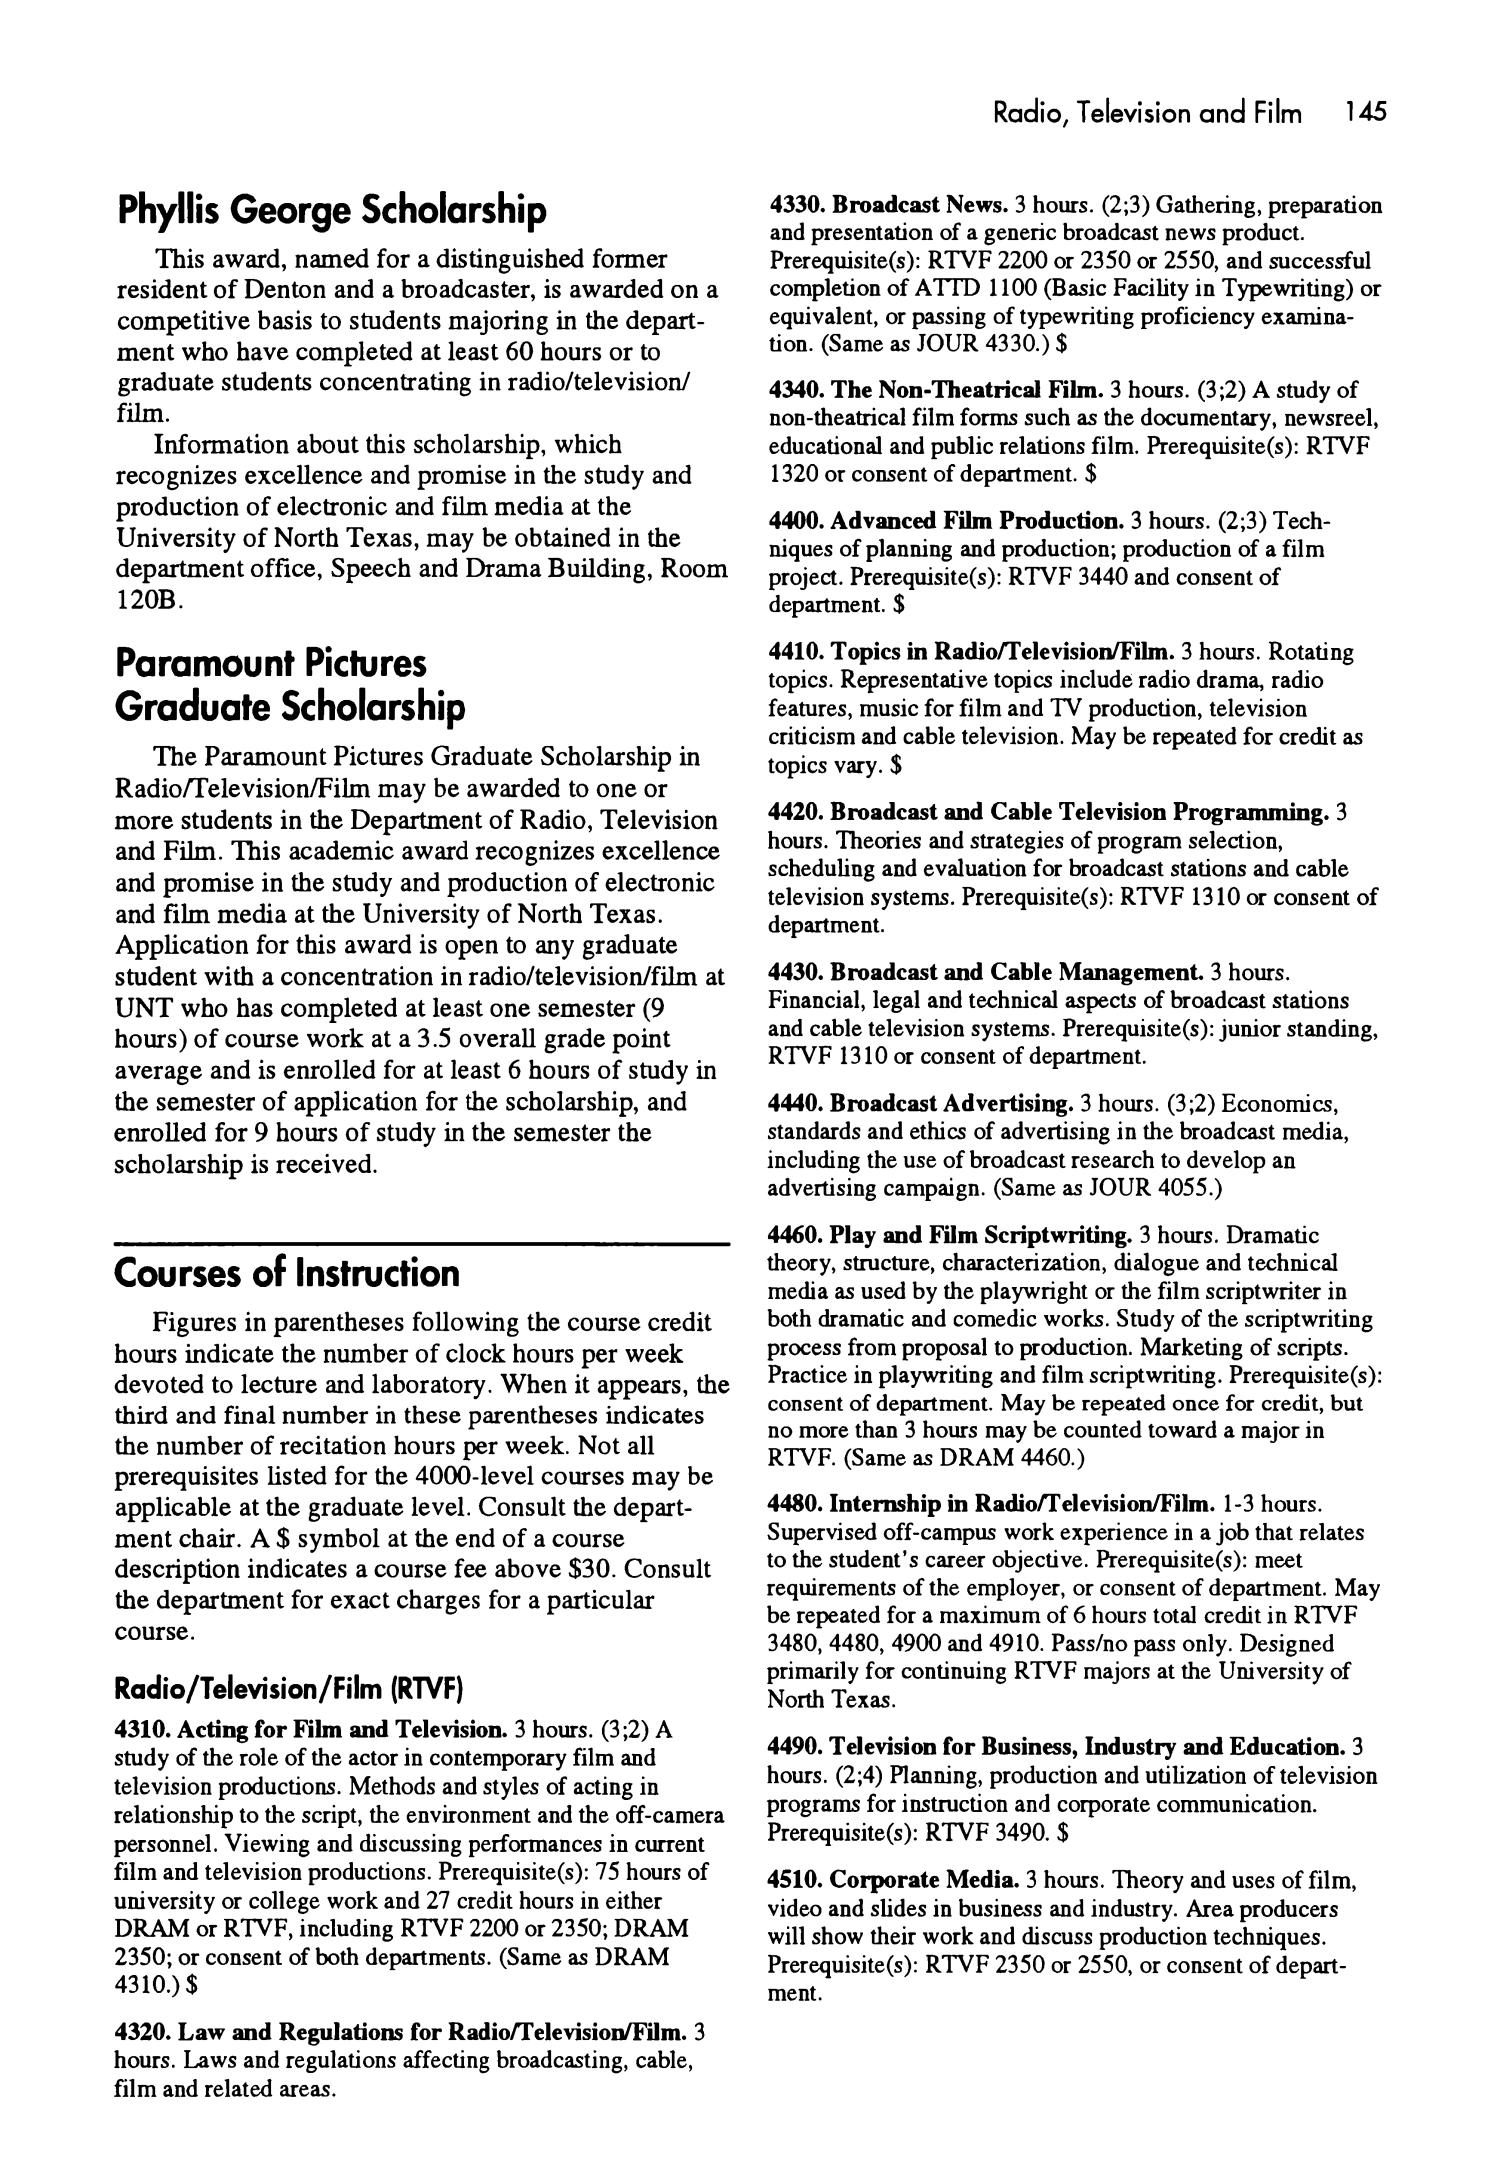 Catalog of the University of North Texas, 1994-1995